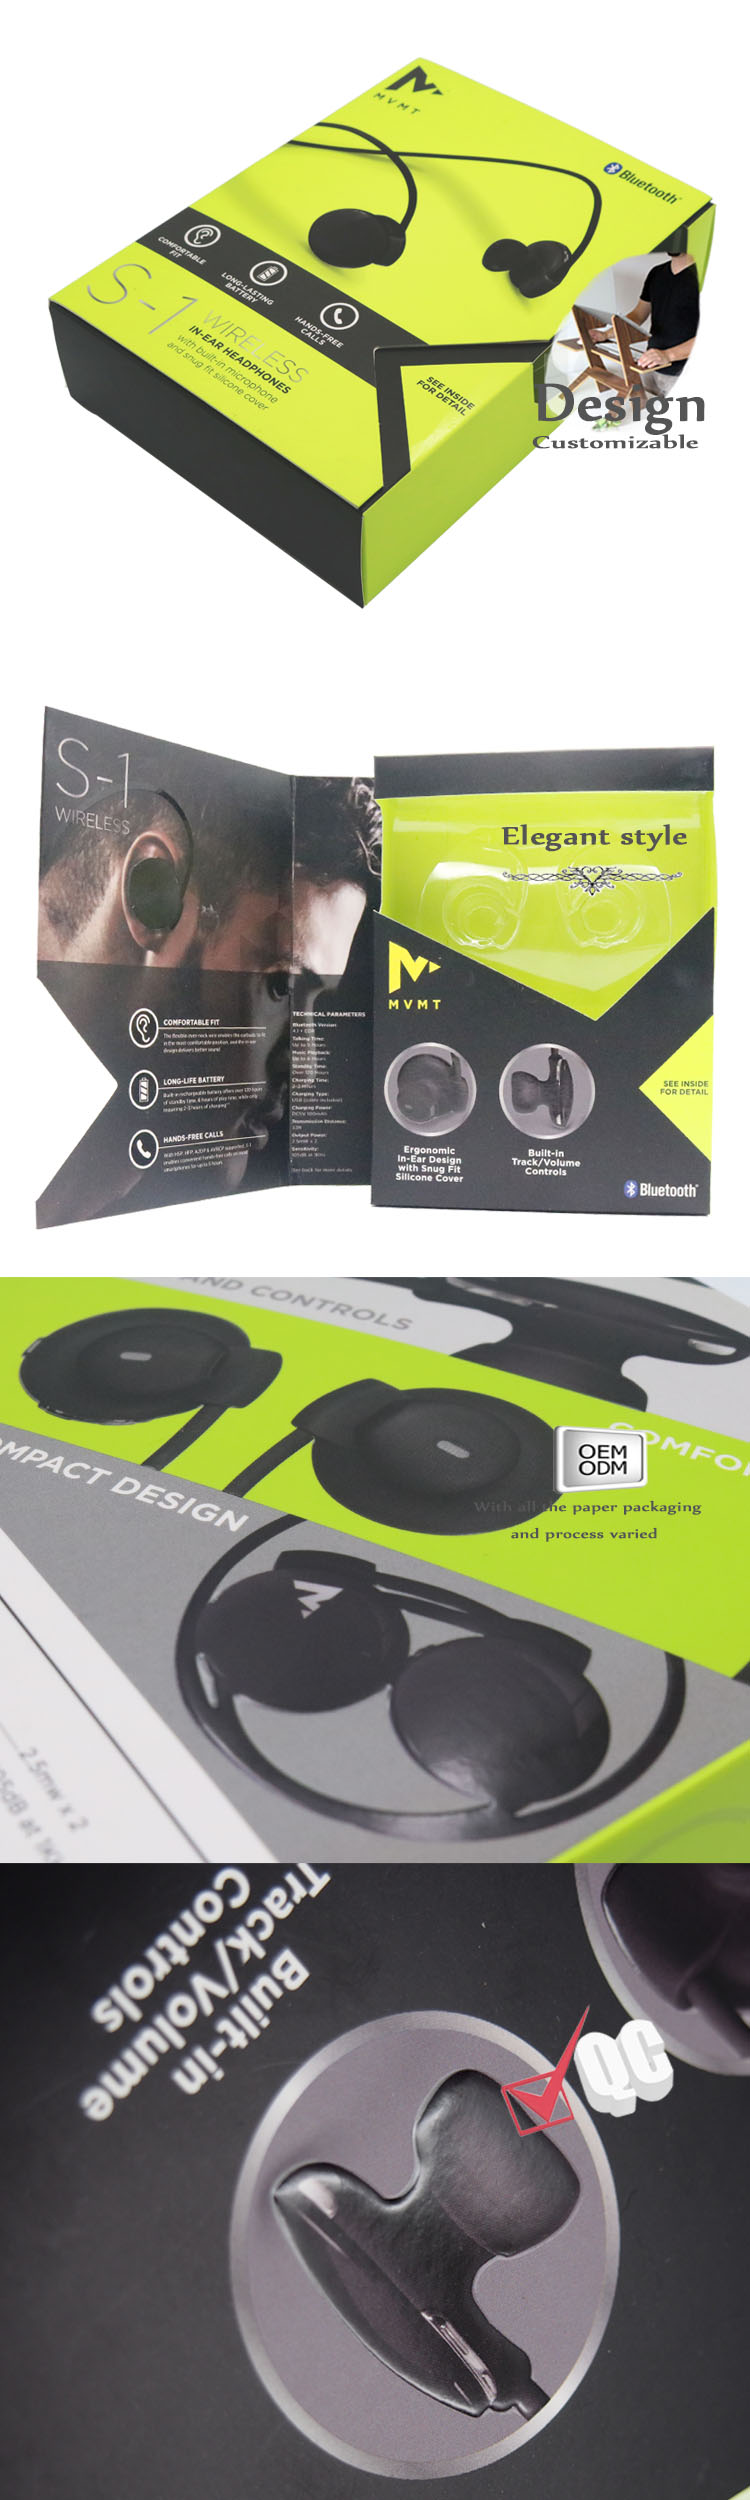 Headset packaging mass customization